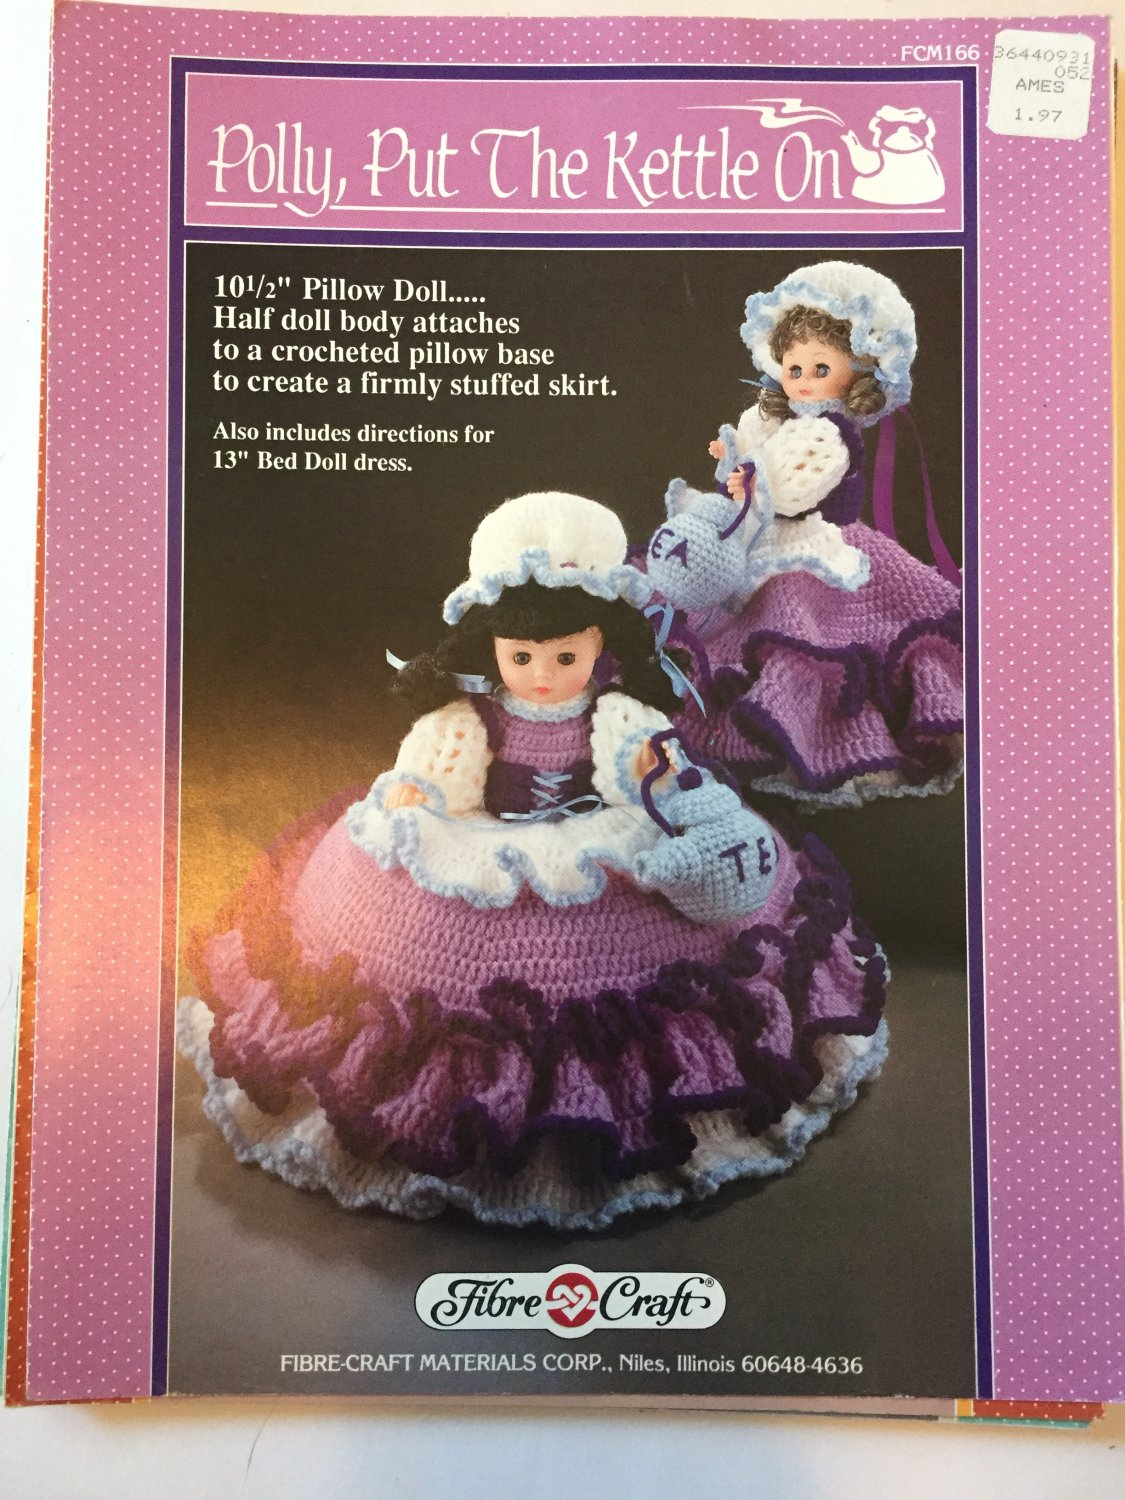 Polly Put the Kettle On Pillow Doll Bed Doll Crochet Pattern  Fibre Craft FCM166